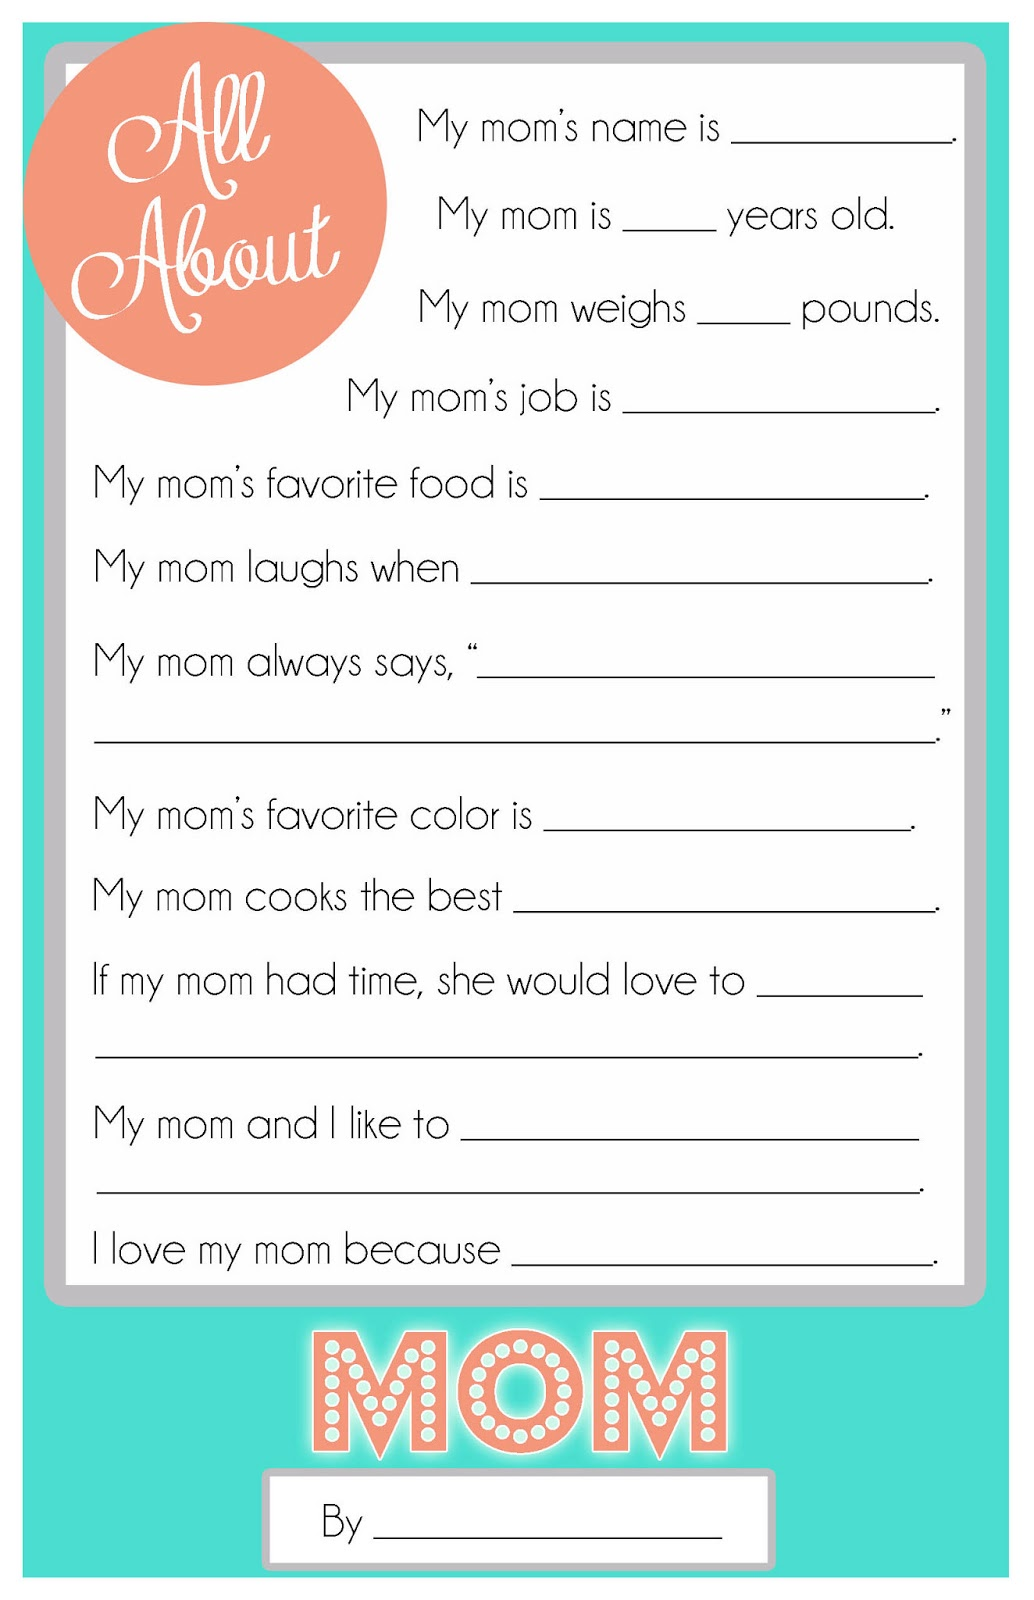 Mothers Day Questionnaire {A FREE Printable for the Kids